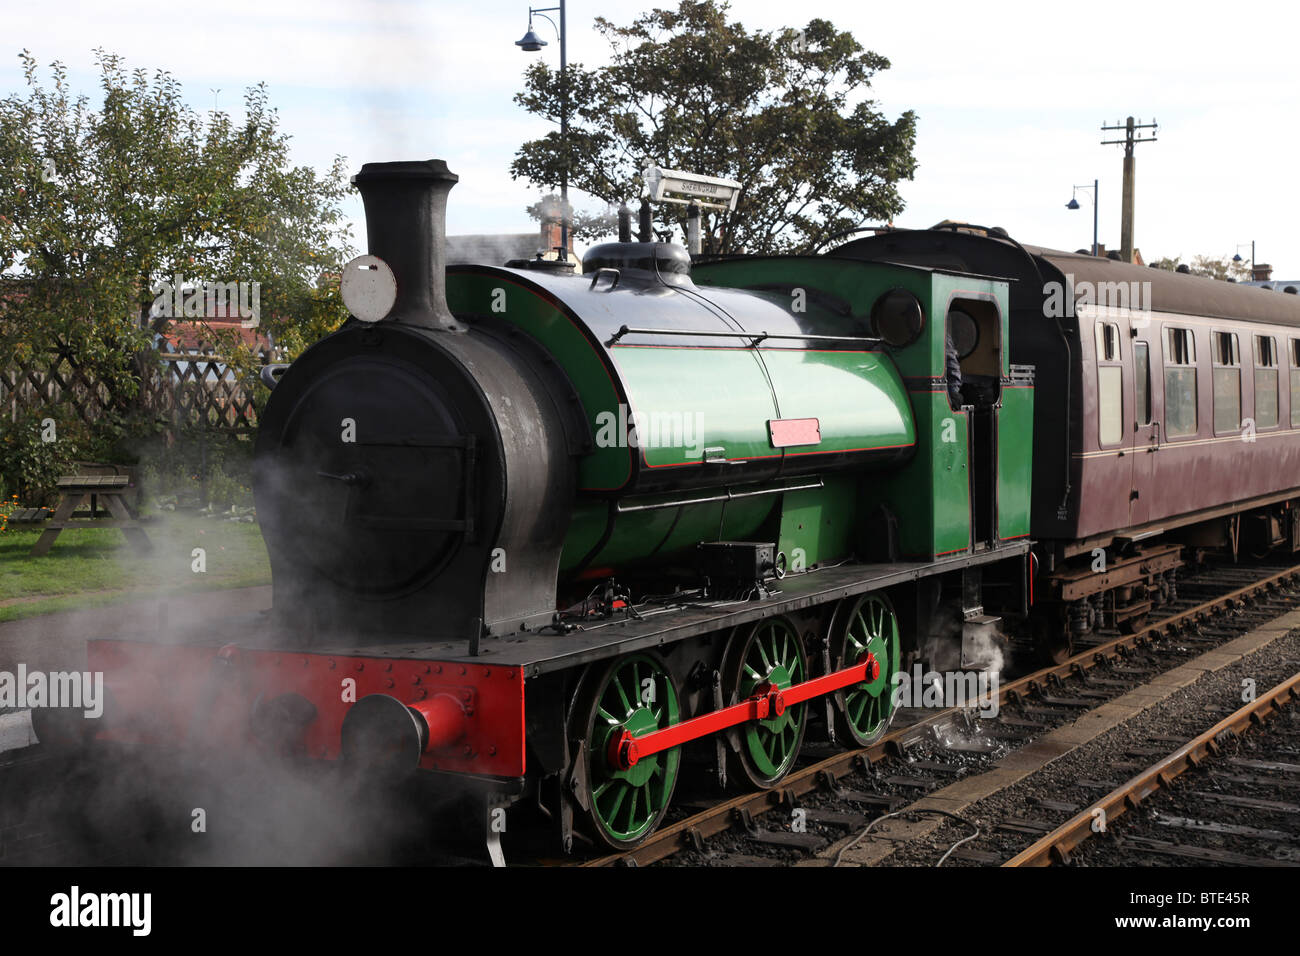 Images Of Old Fashioned Trains